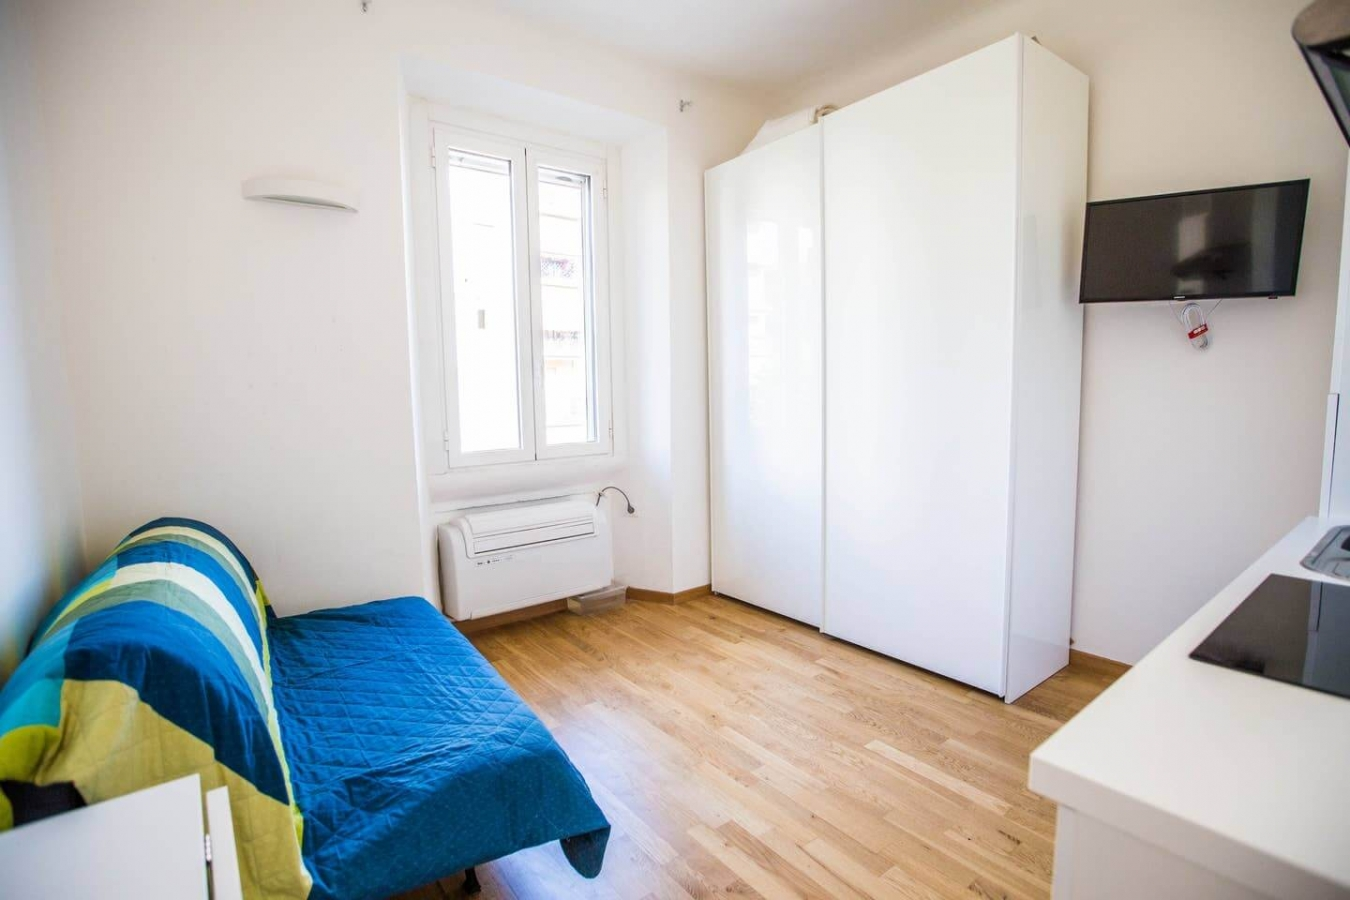 The Studio is near the metro station Brenta